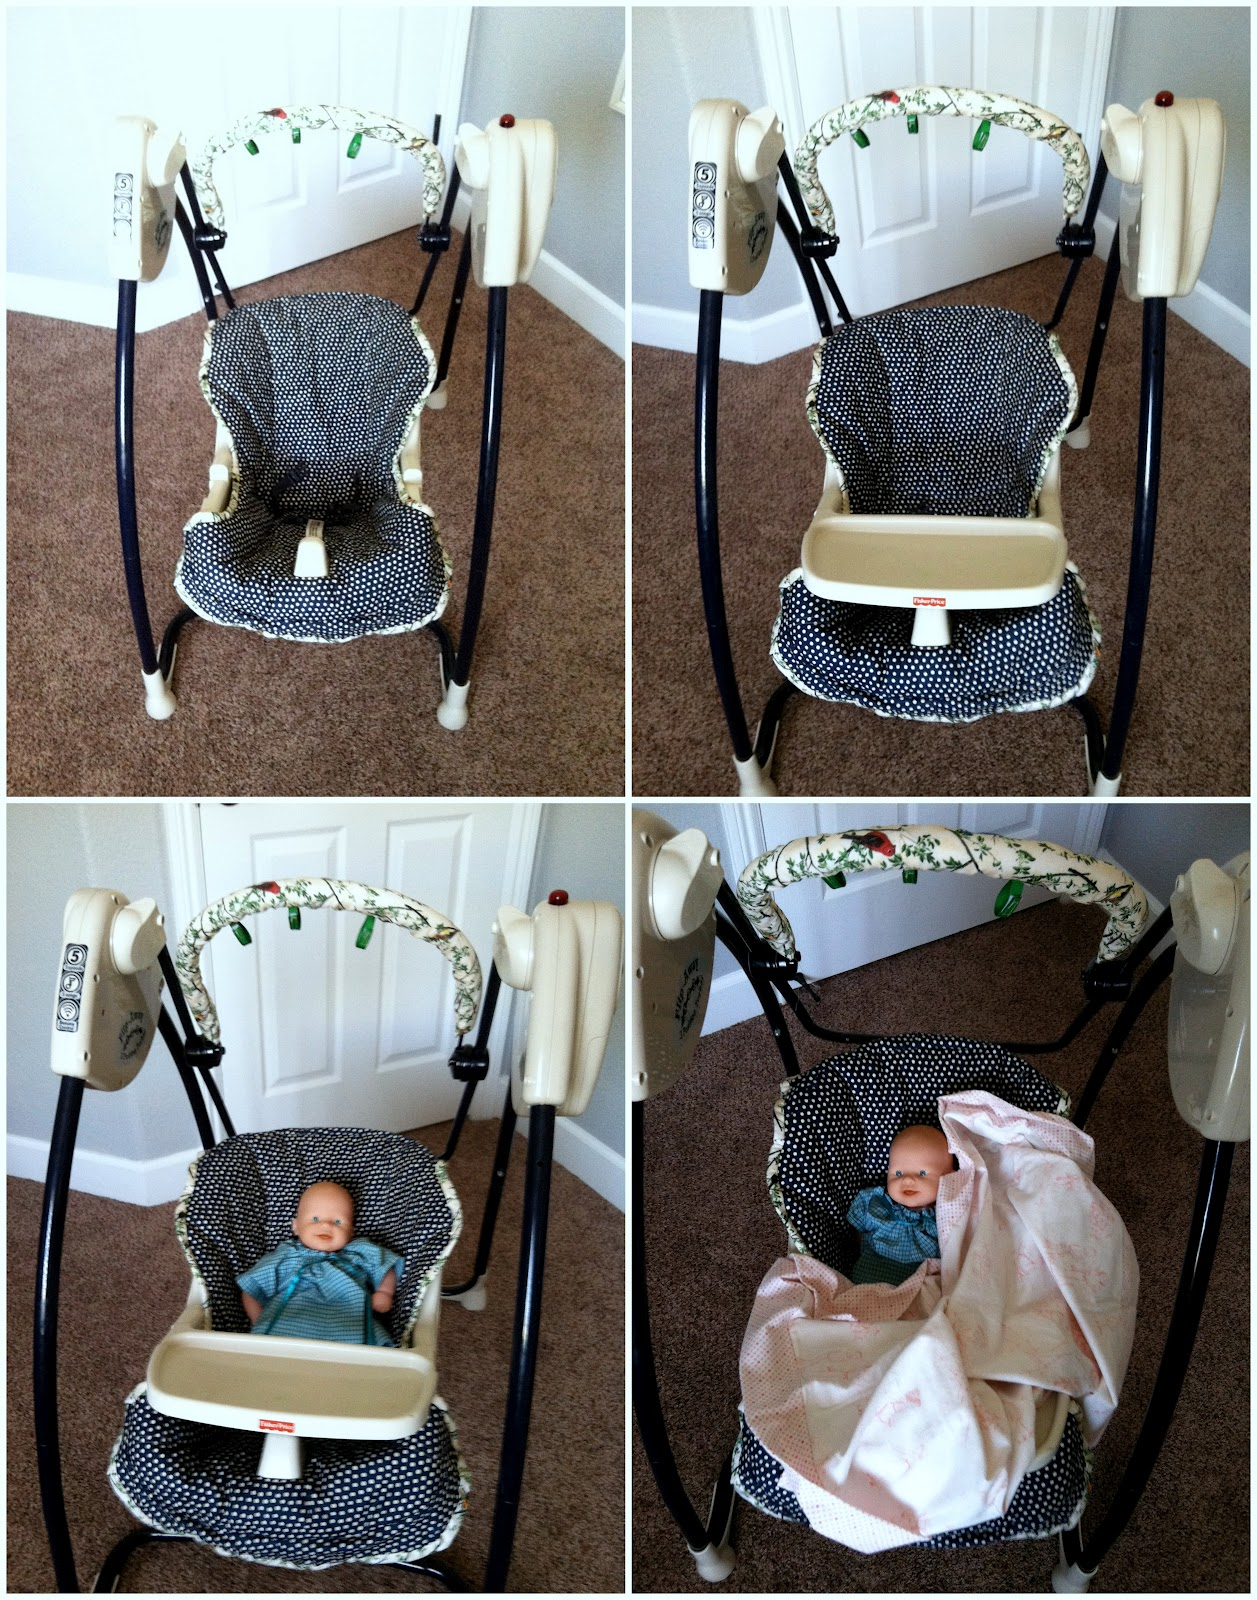 Getz Blogging Diy Baby Swing Seat Cover